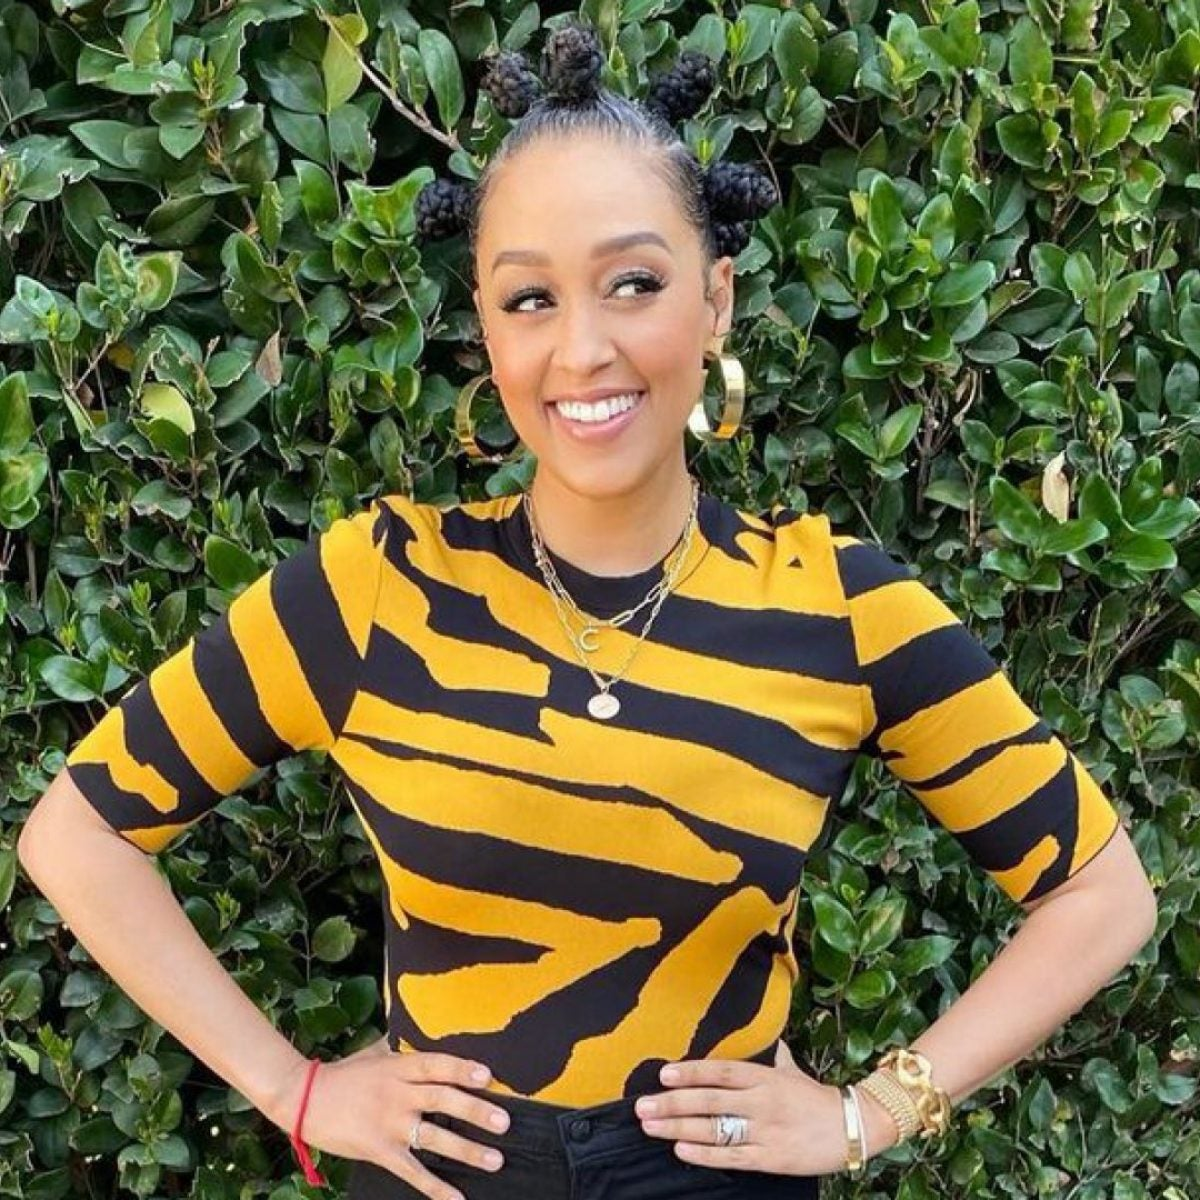 Let Tia Mowry's Instagram Slay Get You Ready For Spring